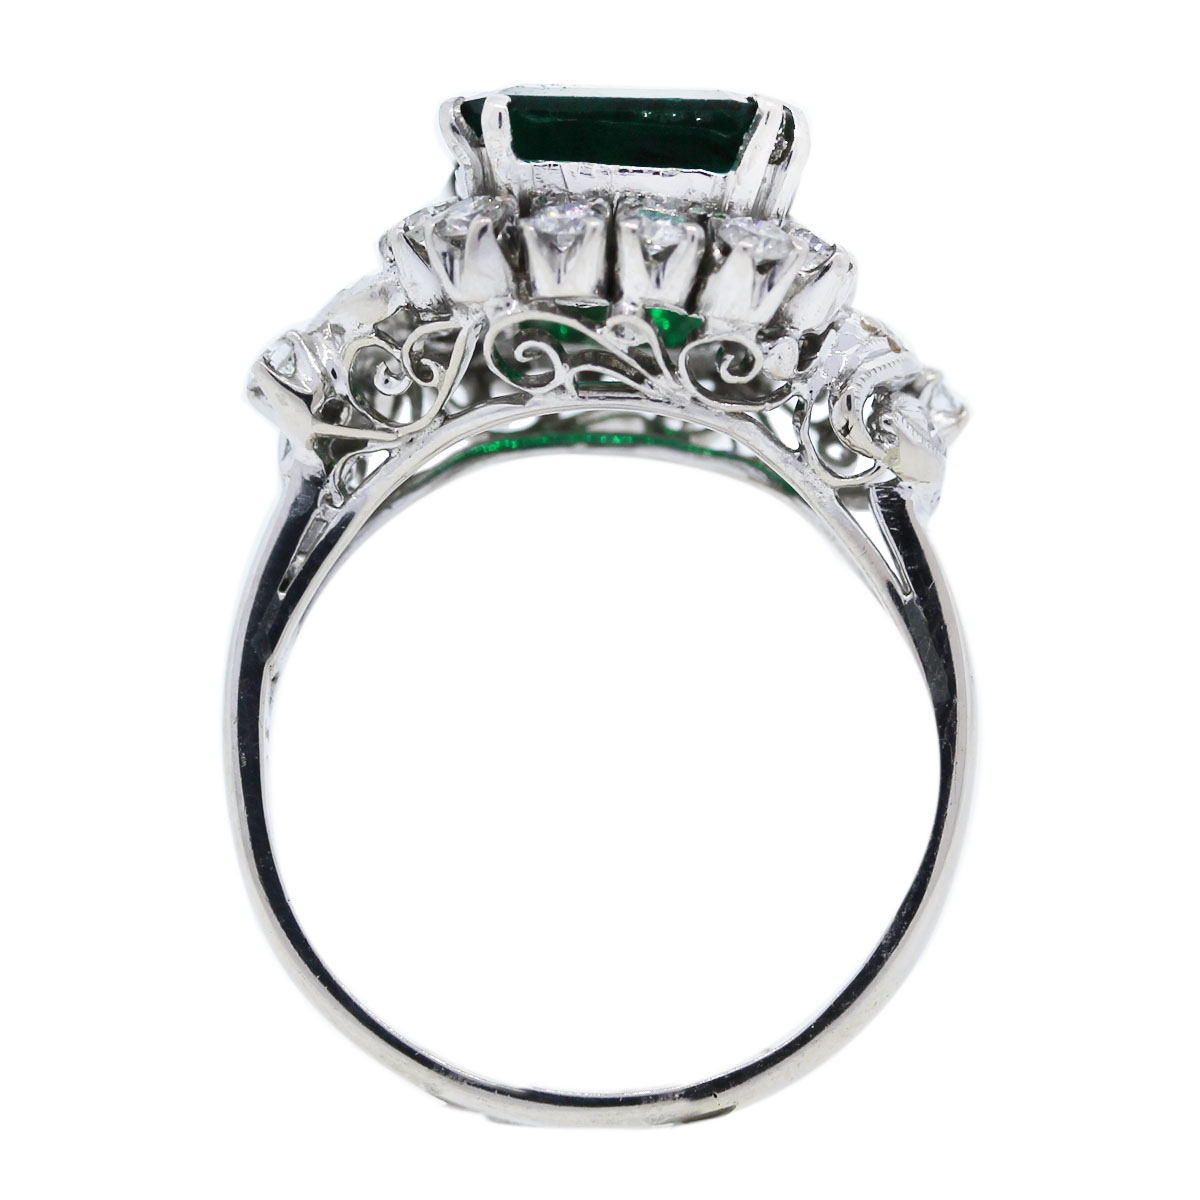 14k white gold with diamonds and chatham emerald ring